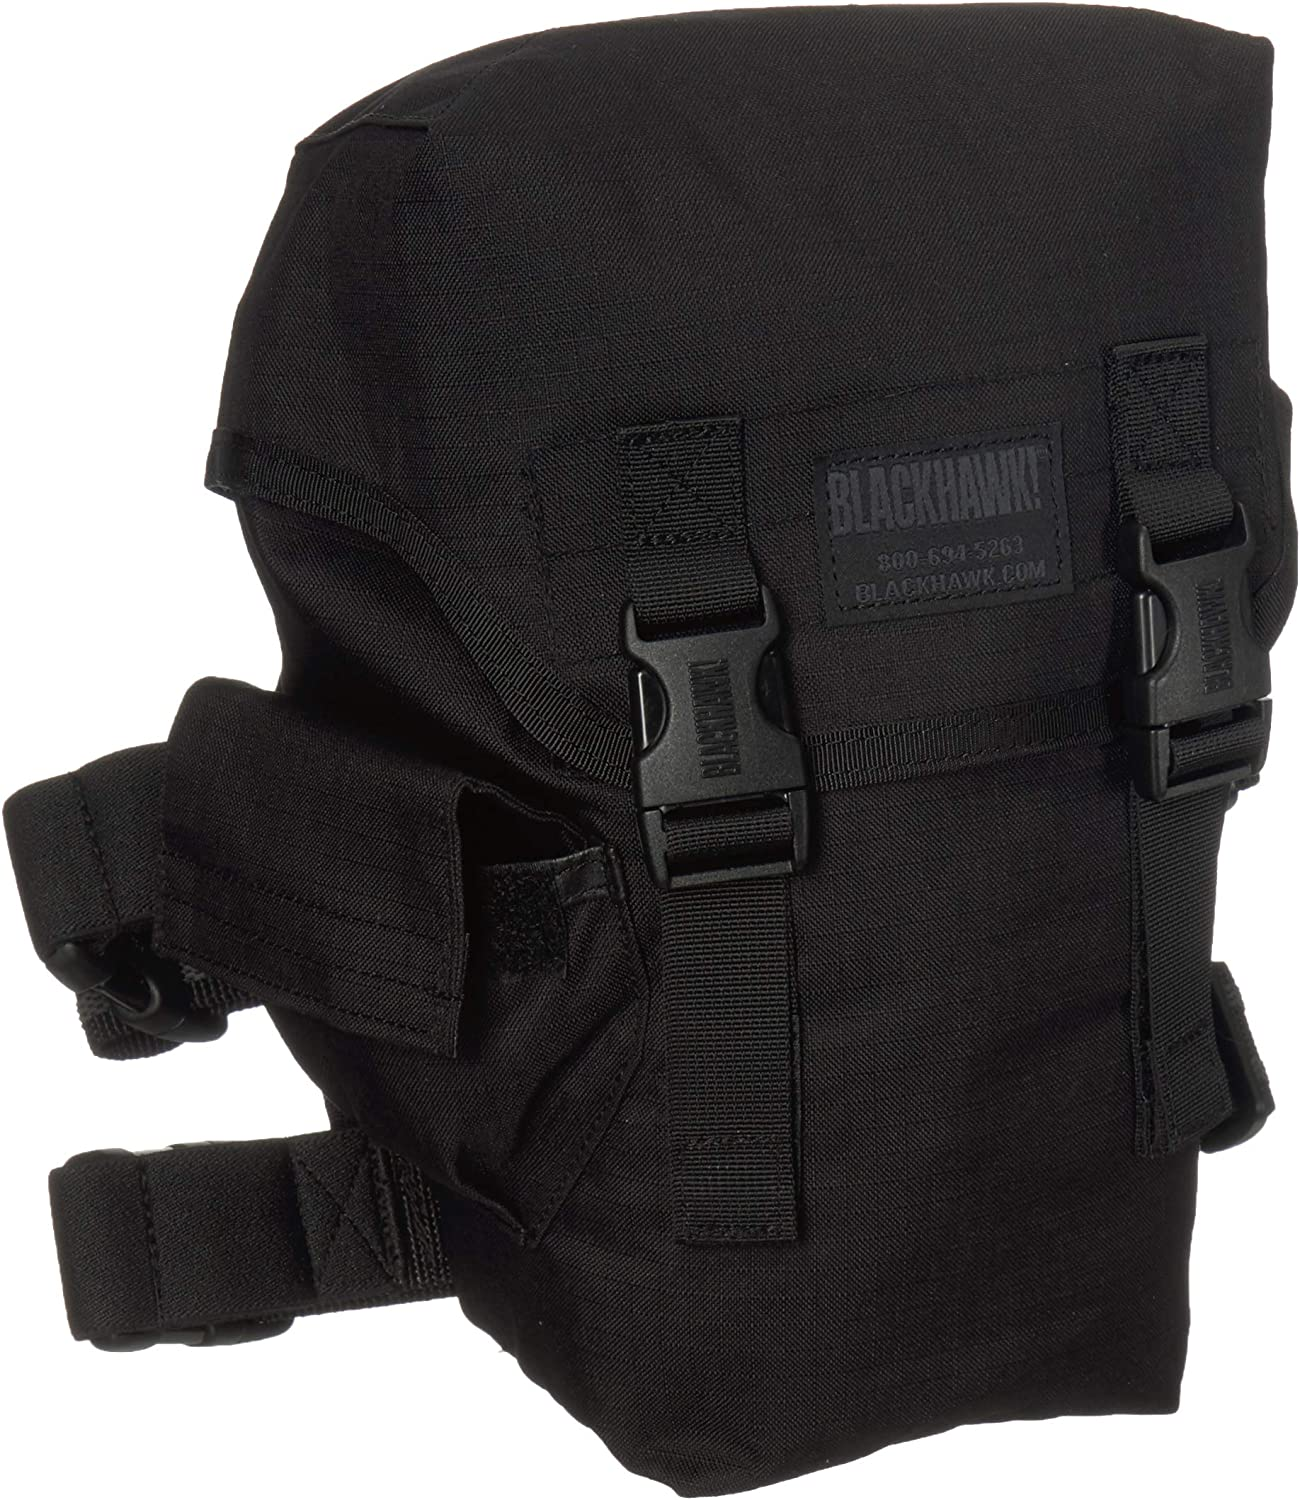 BLACKHAWK Ultralight Omega Gas Mask Pouch